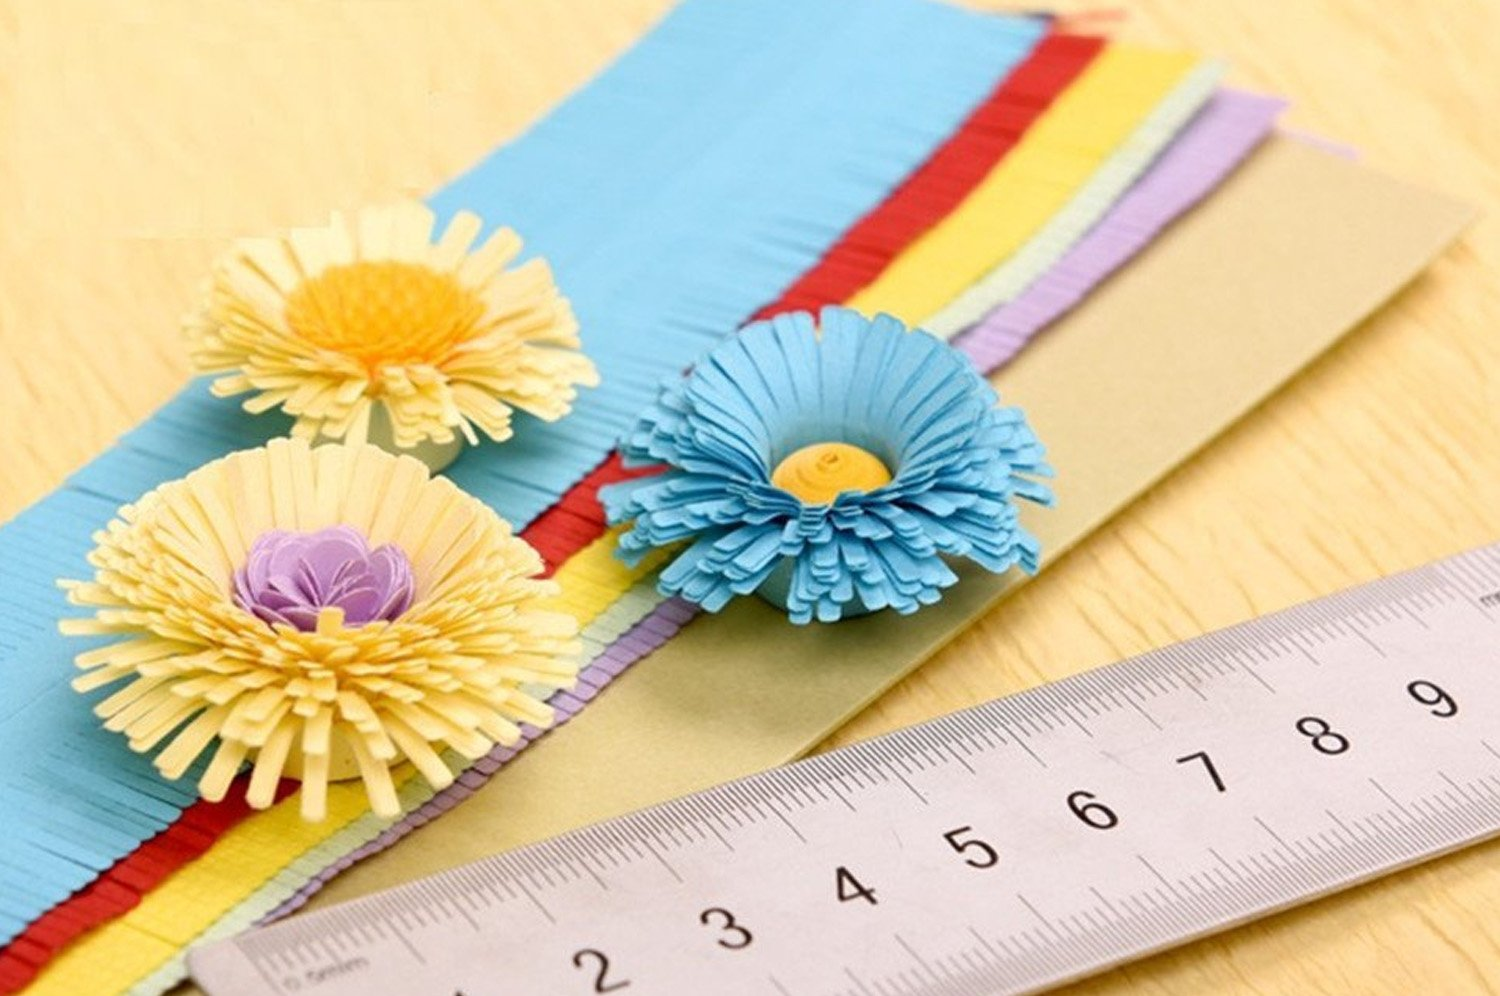 MS DIY 8 Style Flower Design Paper Quilling Strip Creations Make Paper Flowers Kit